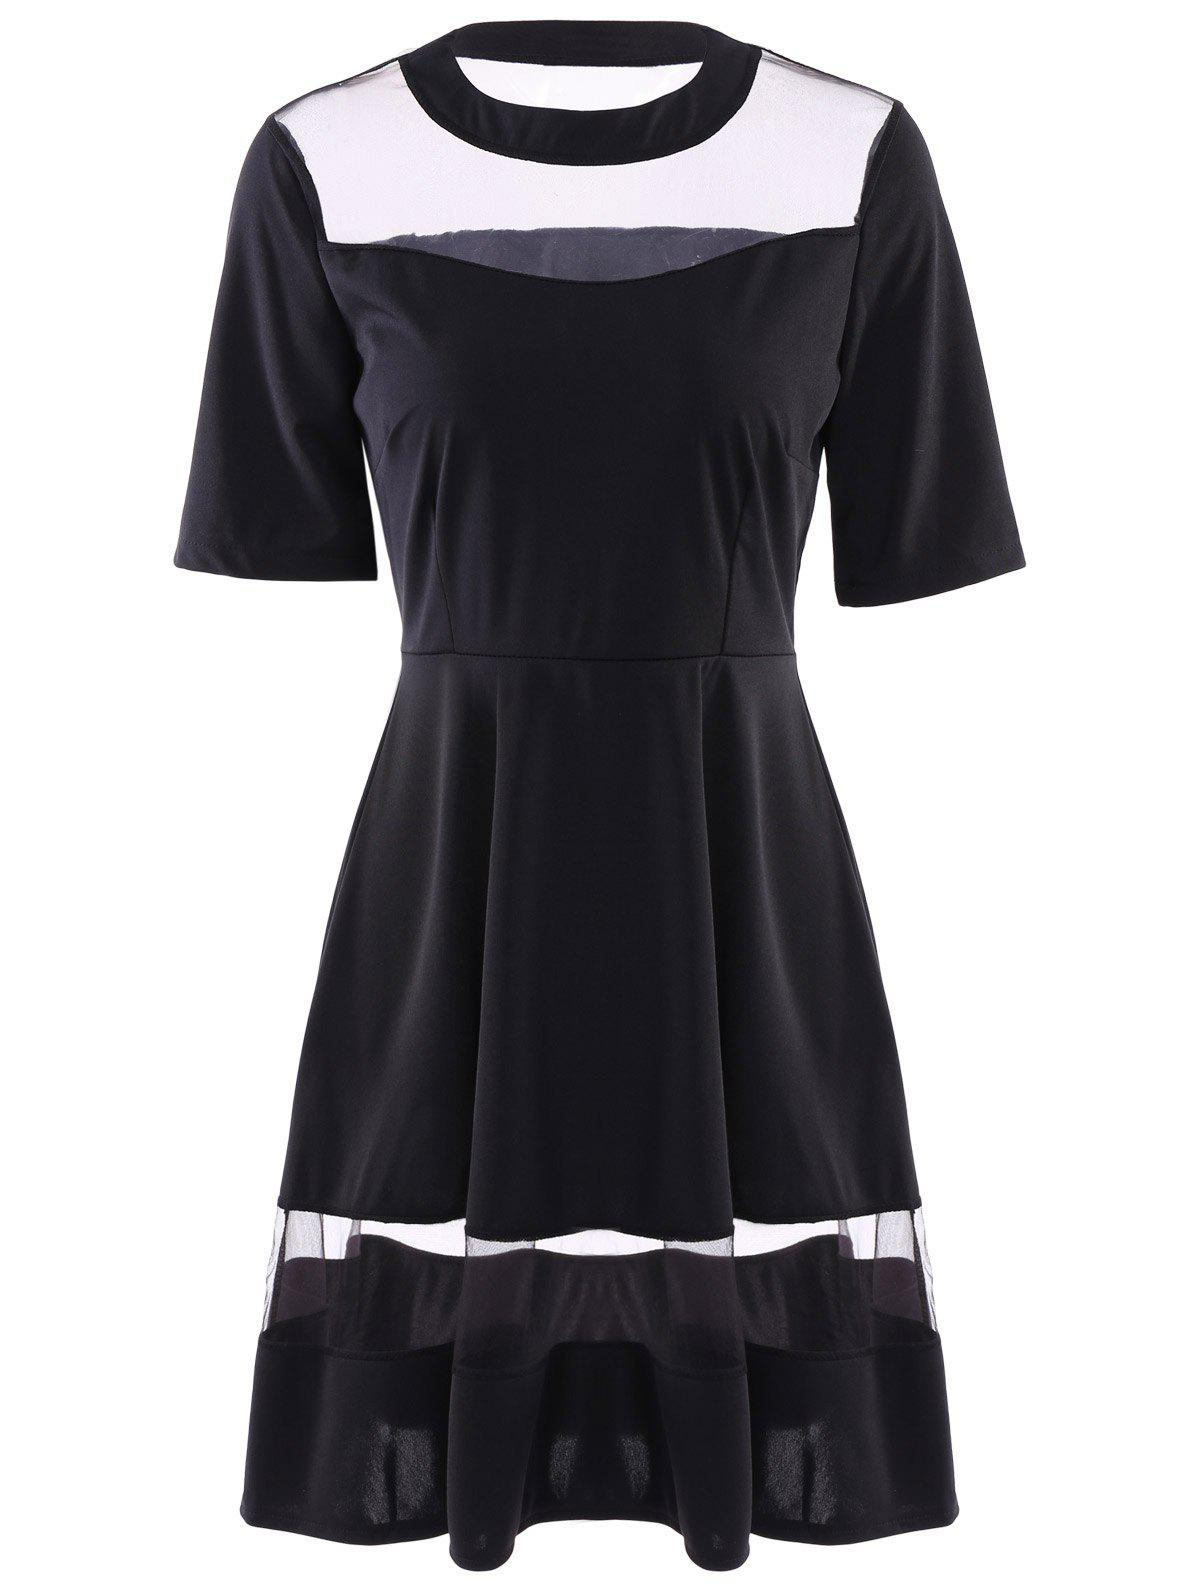 Round Neck Half Sleeve See-Through Spliced Women's Dress - BLACK S